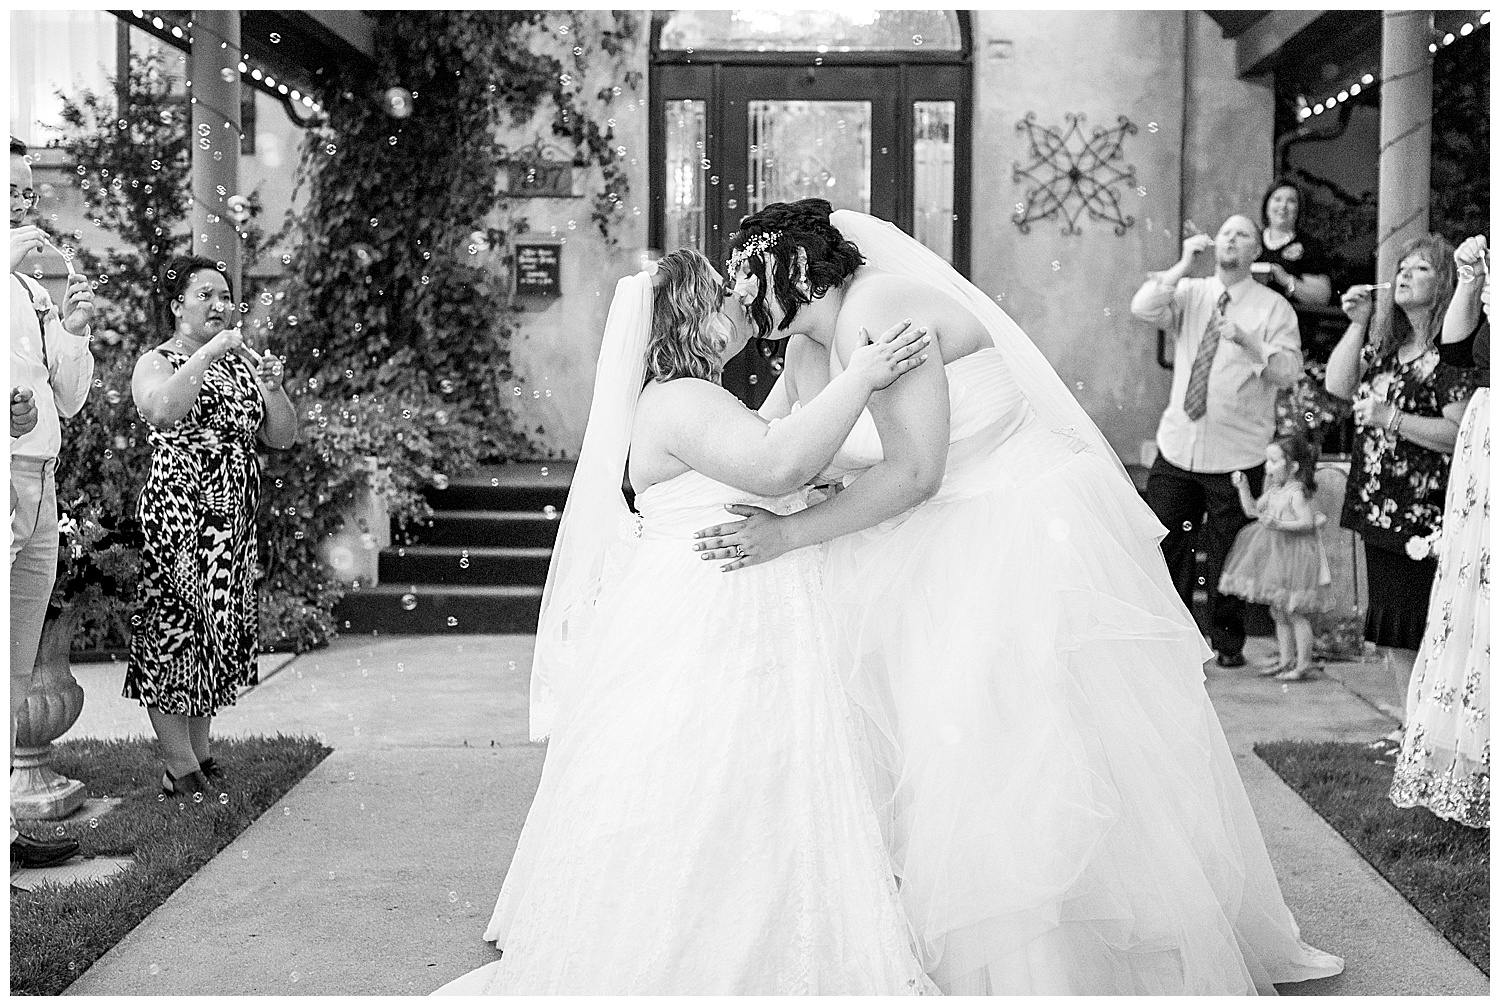 Utah Same Sex Wedding| Salt Lake City, Utah | Bri Bergman Photography 23.jpg